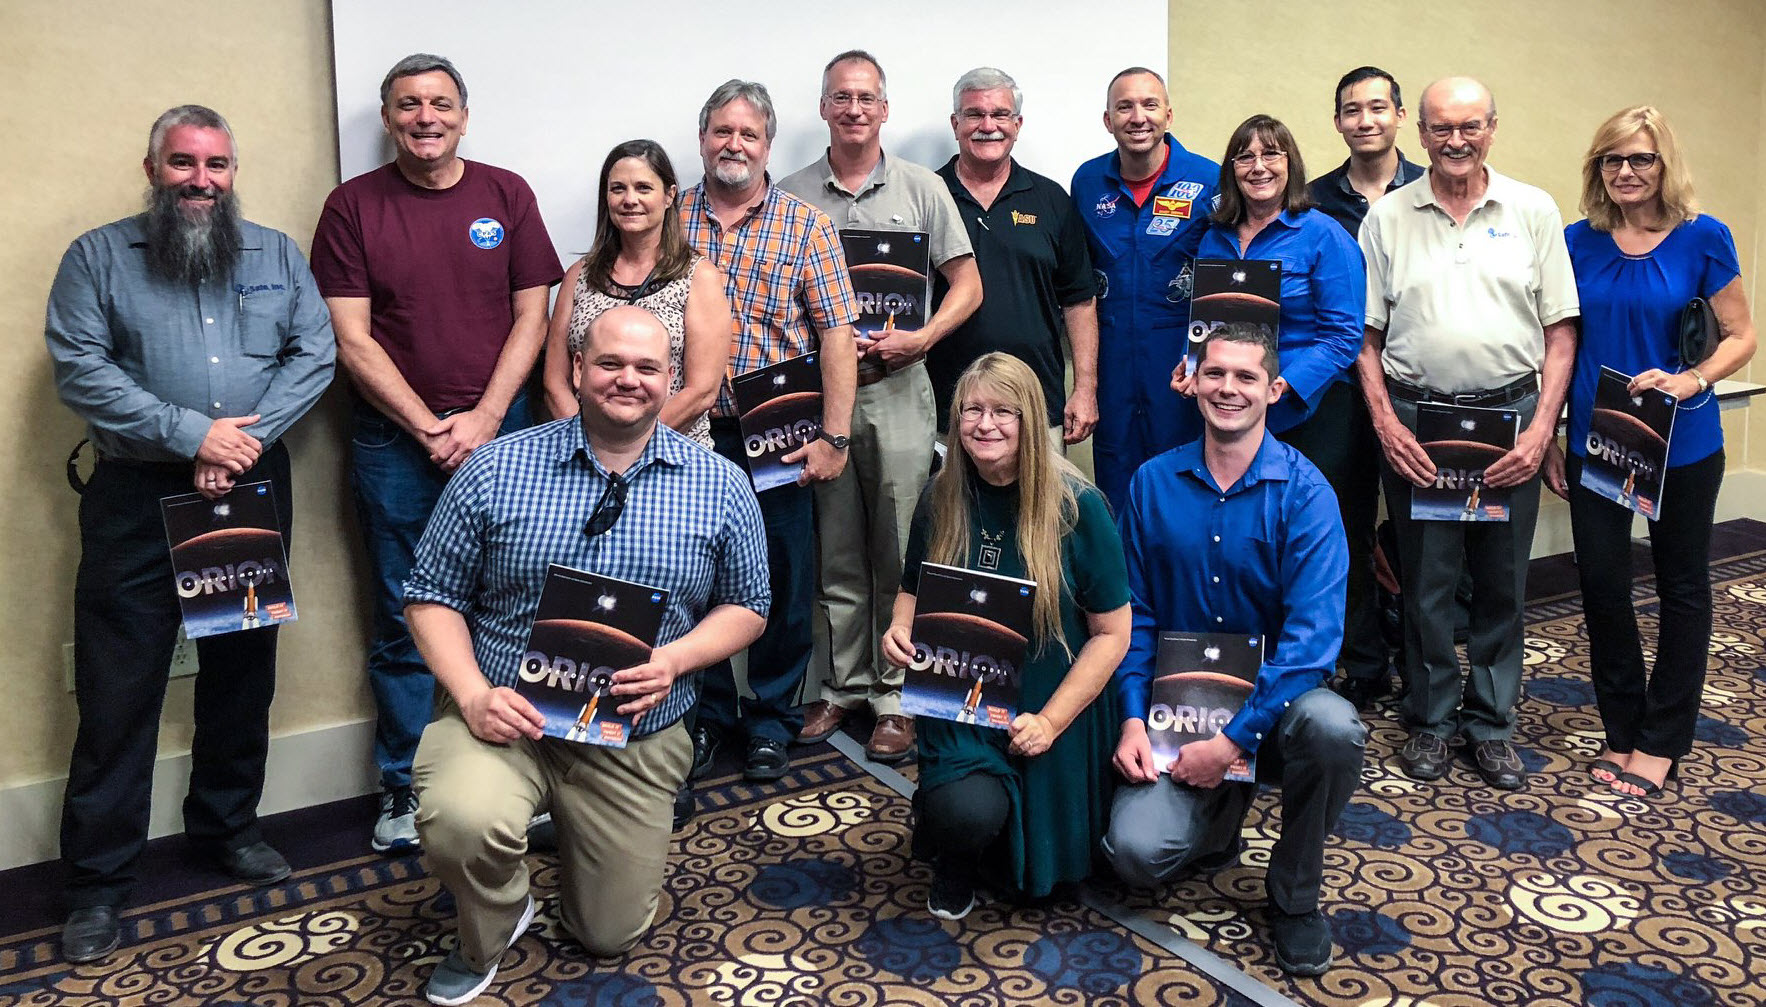 Safe team with NASA Orion Program Manager Mark Kirasich (back row, second from left) and NASA astronaut Randy Breznik (back row, fifth from right), at a special NASA/YPG meet and greet, the day before the Orion parachute drop testing | Photo credit: NASA